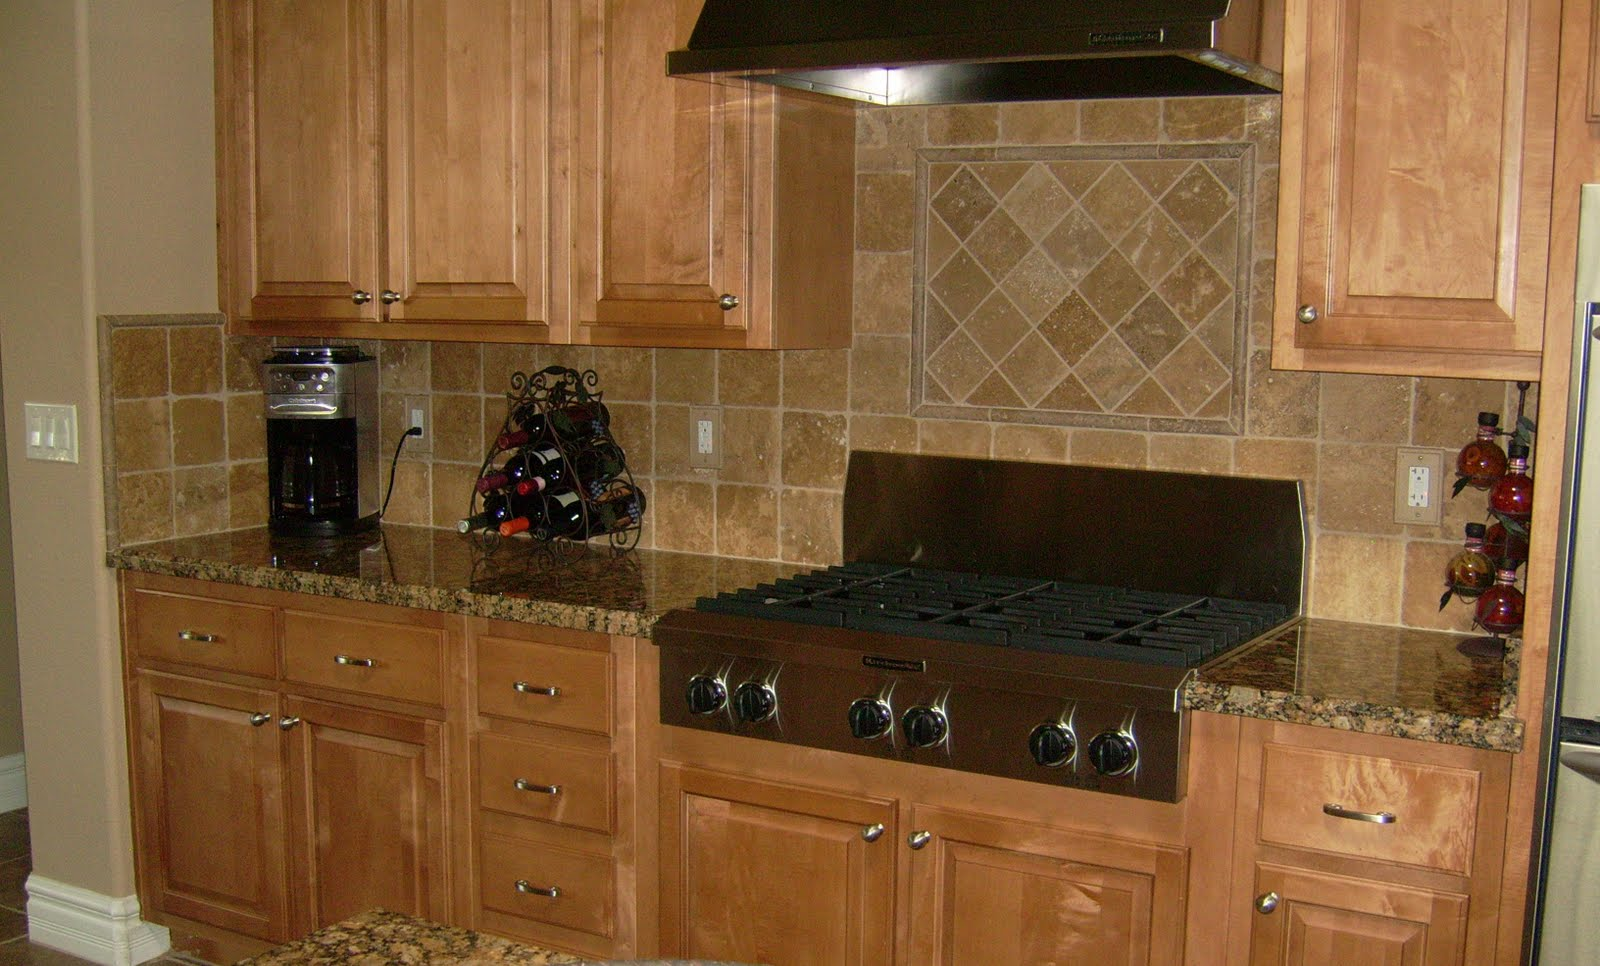 kitchen backsplash ideas tumbled stone kitchen backsplash kitchen backsplash